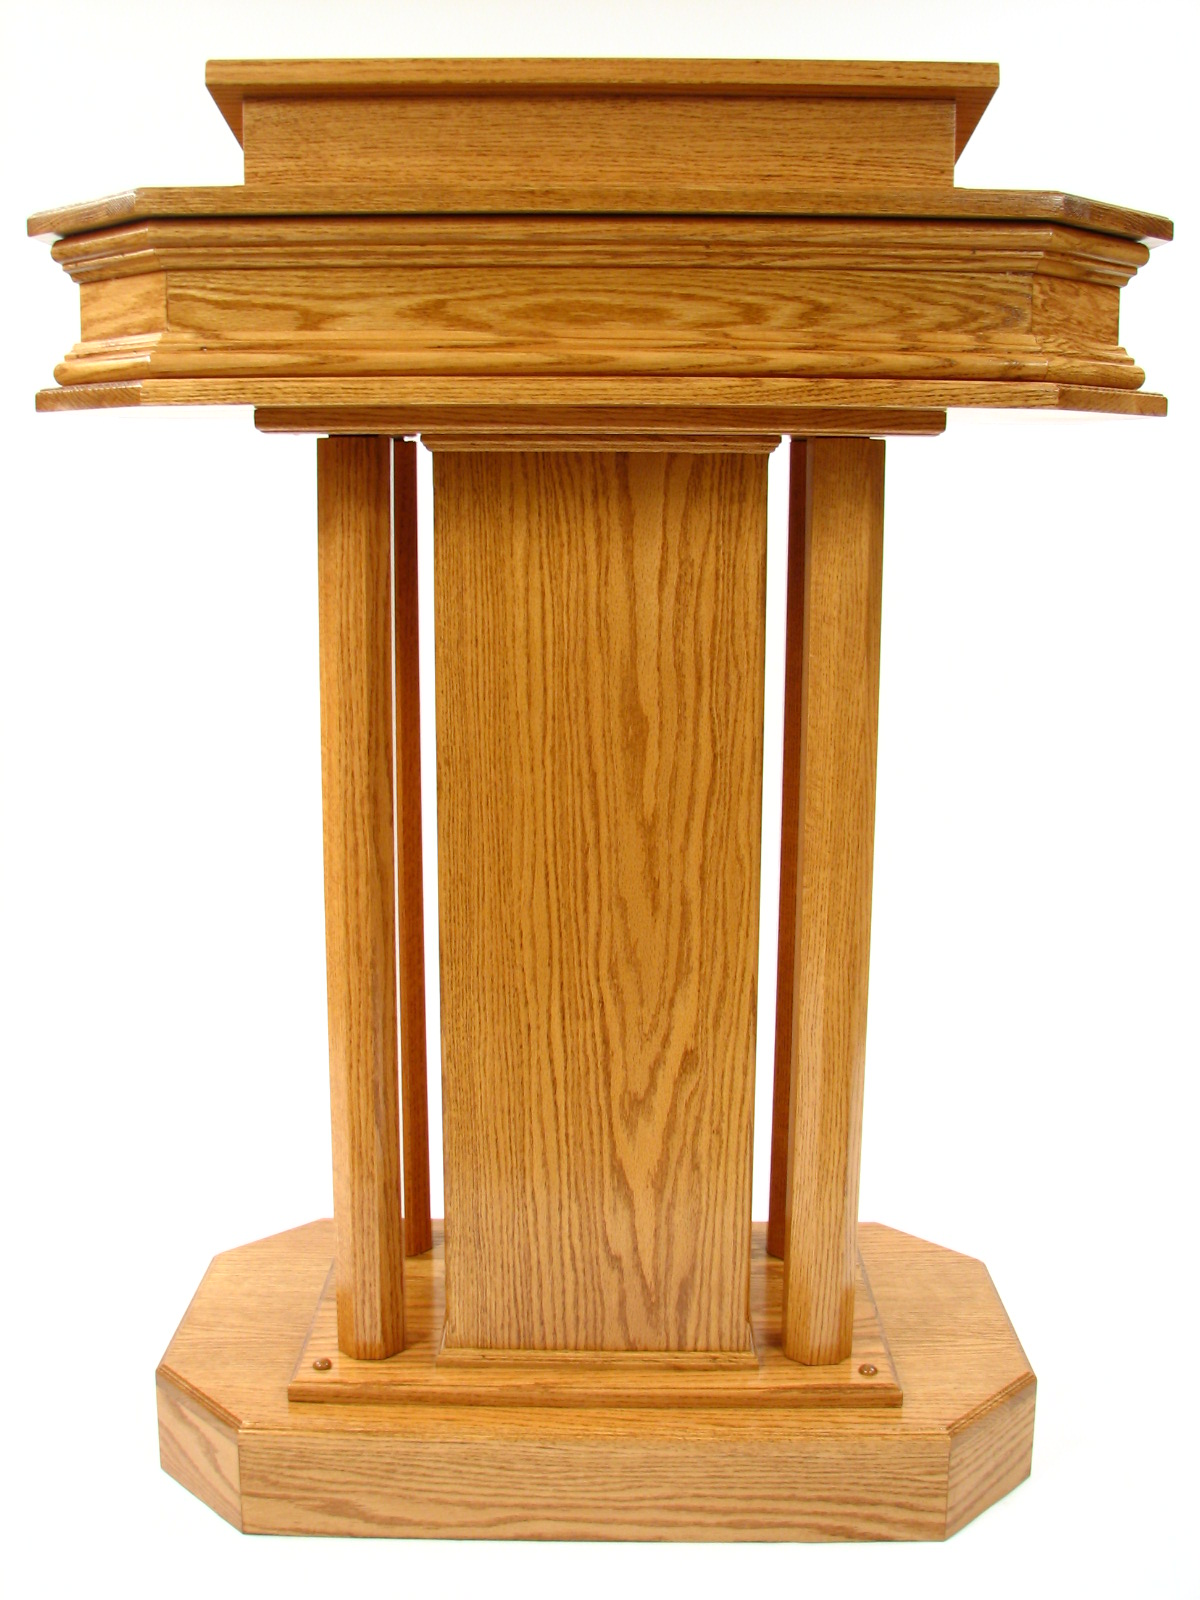 Pulpit clipart #3, Download drawings